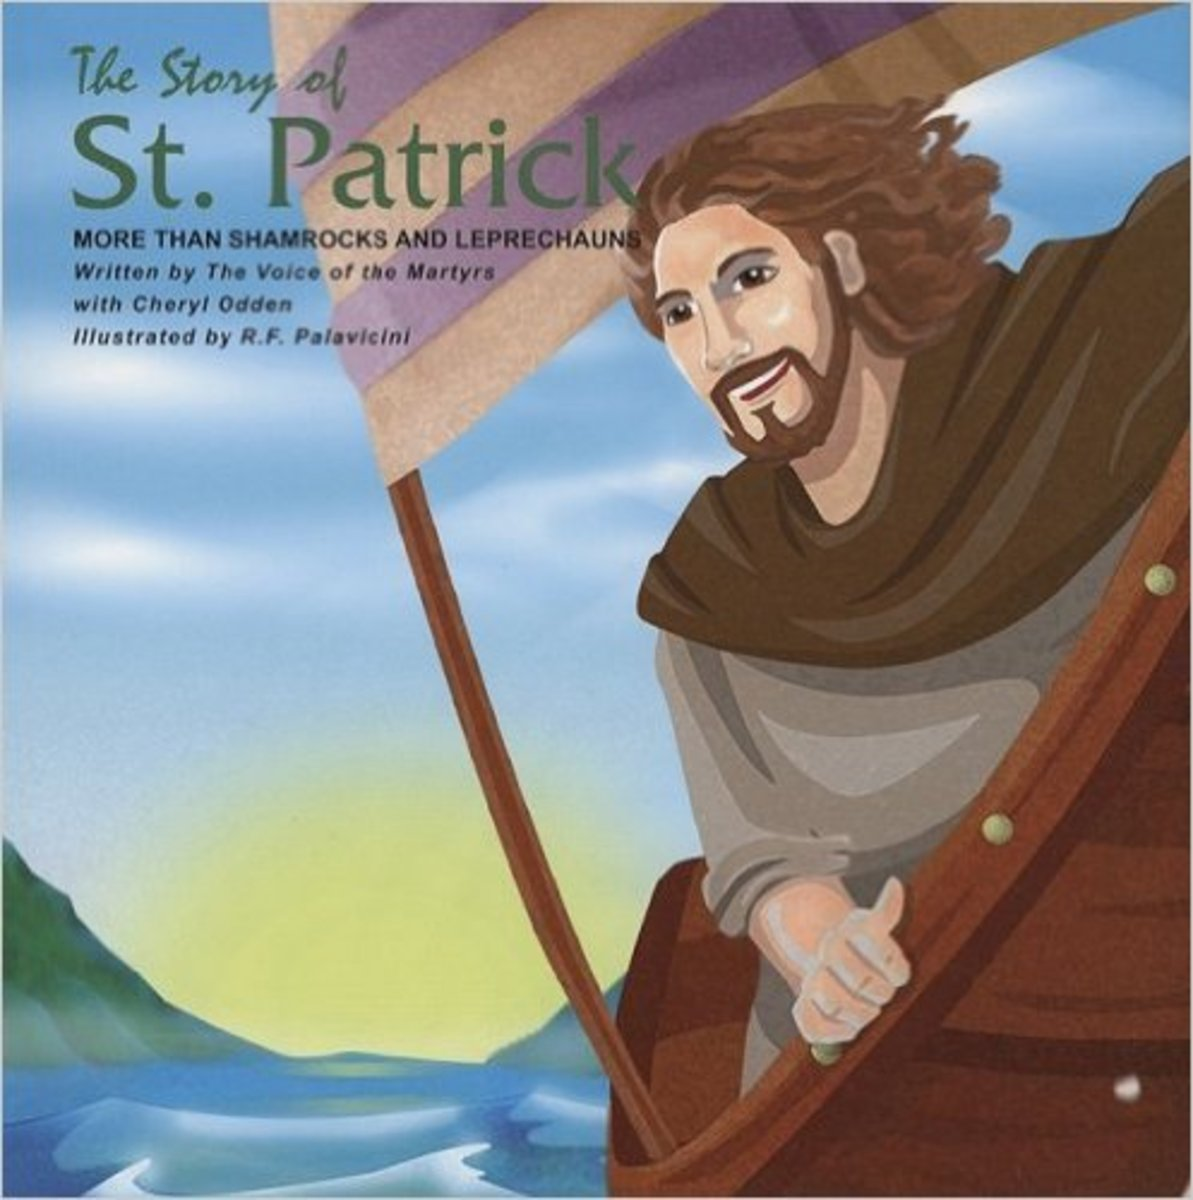 The Story of St. Patrick: More Than Shamrocks and Leprechauns by Voice of the Martyrs